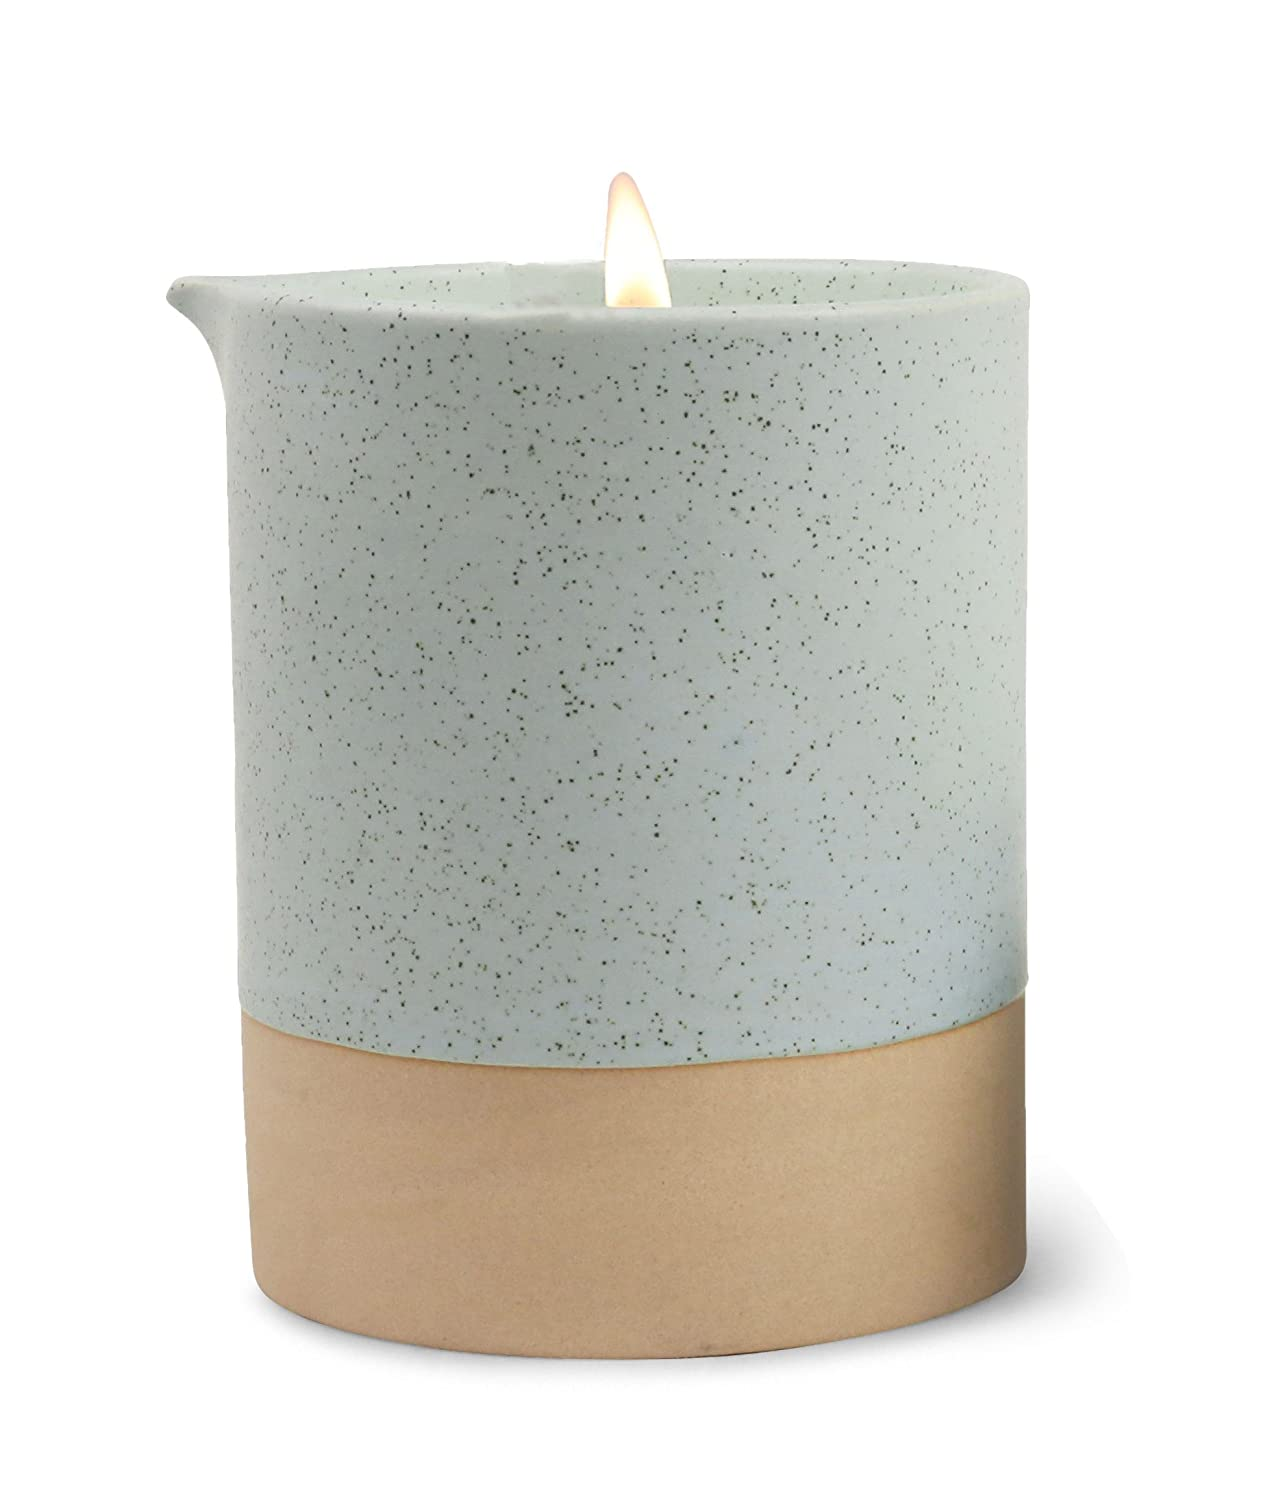 Paddywax Candles Mesa Collection Scented Soy Wax Blend Candle in Matte Speckled Ceramic 10-Ounce Cactus Flower & Matcha